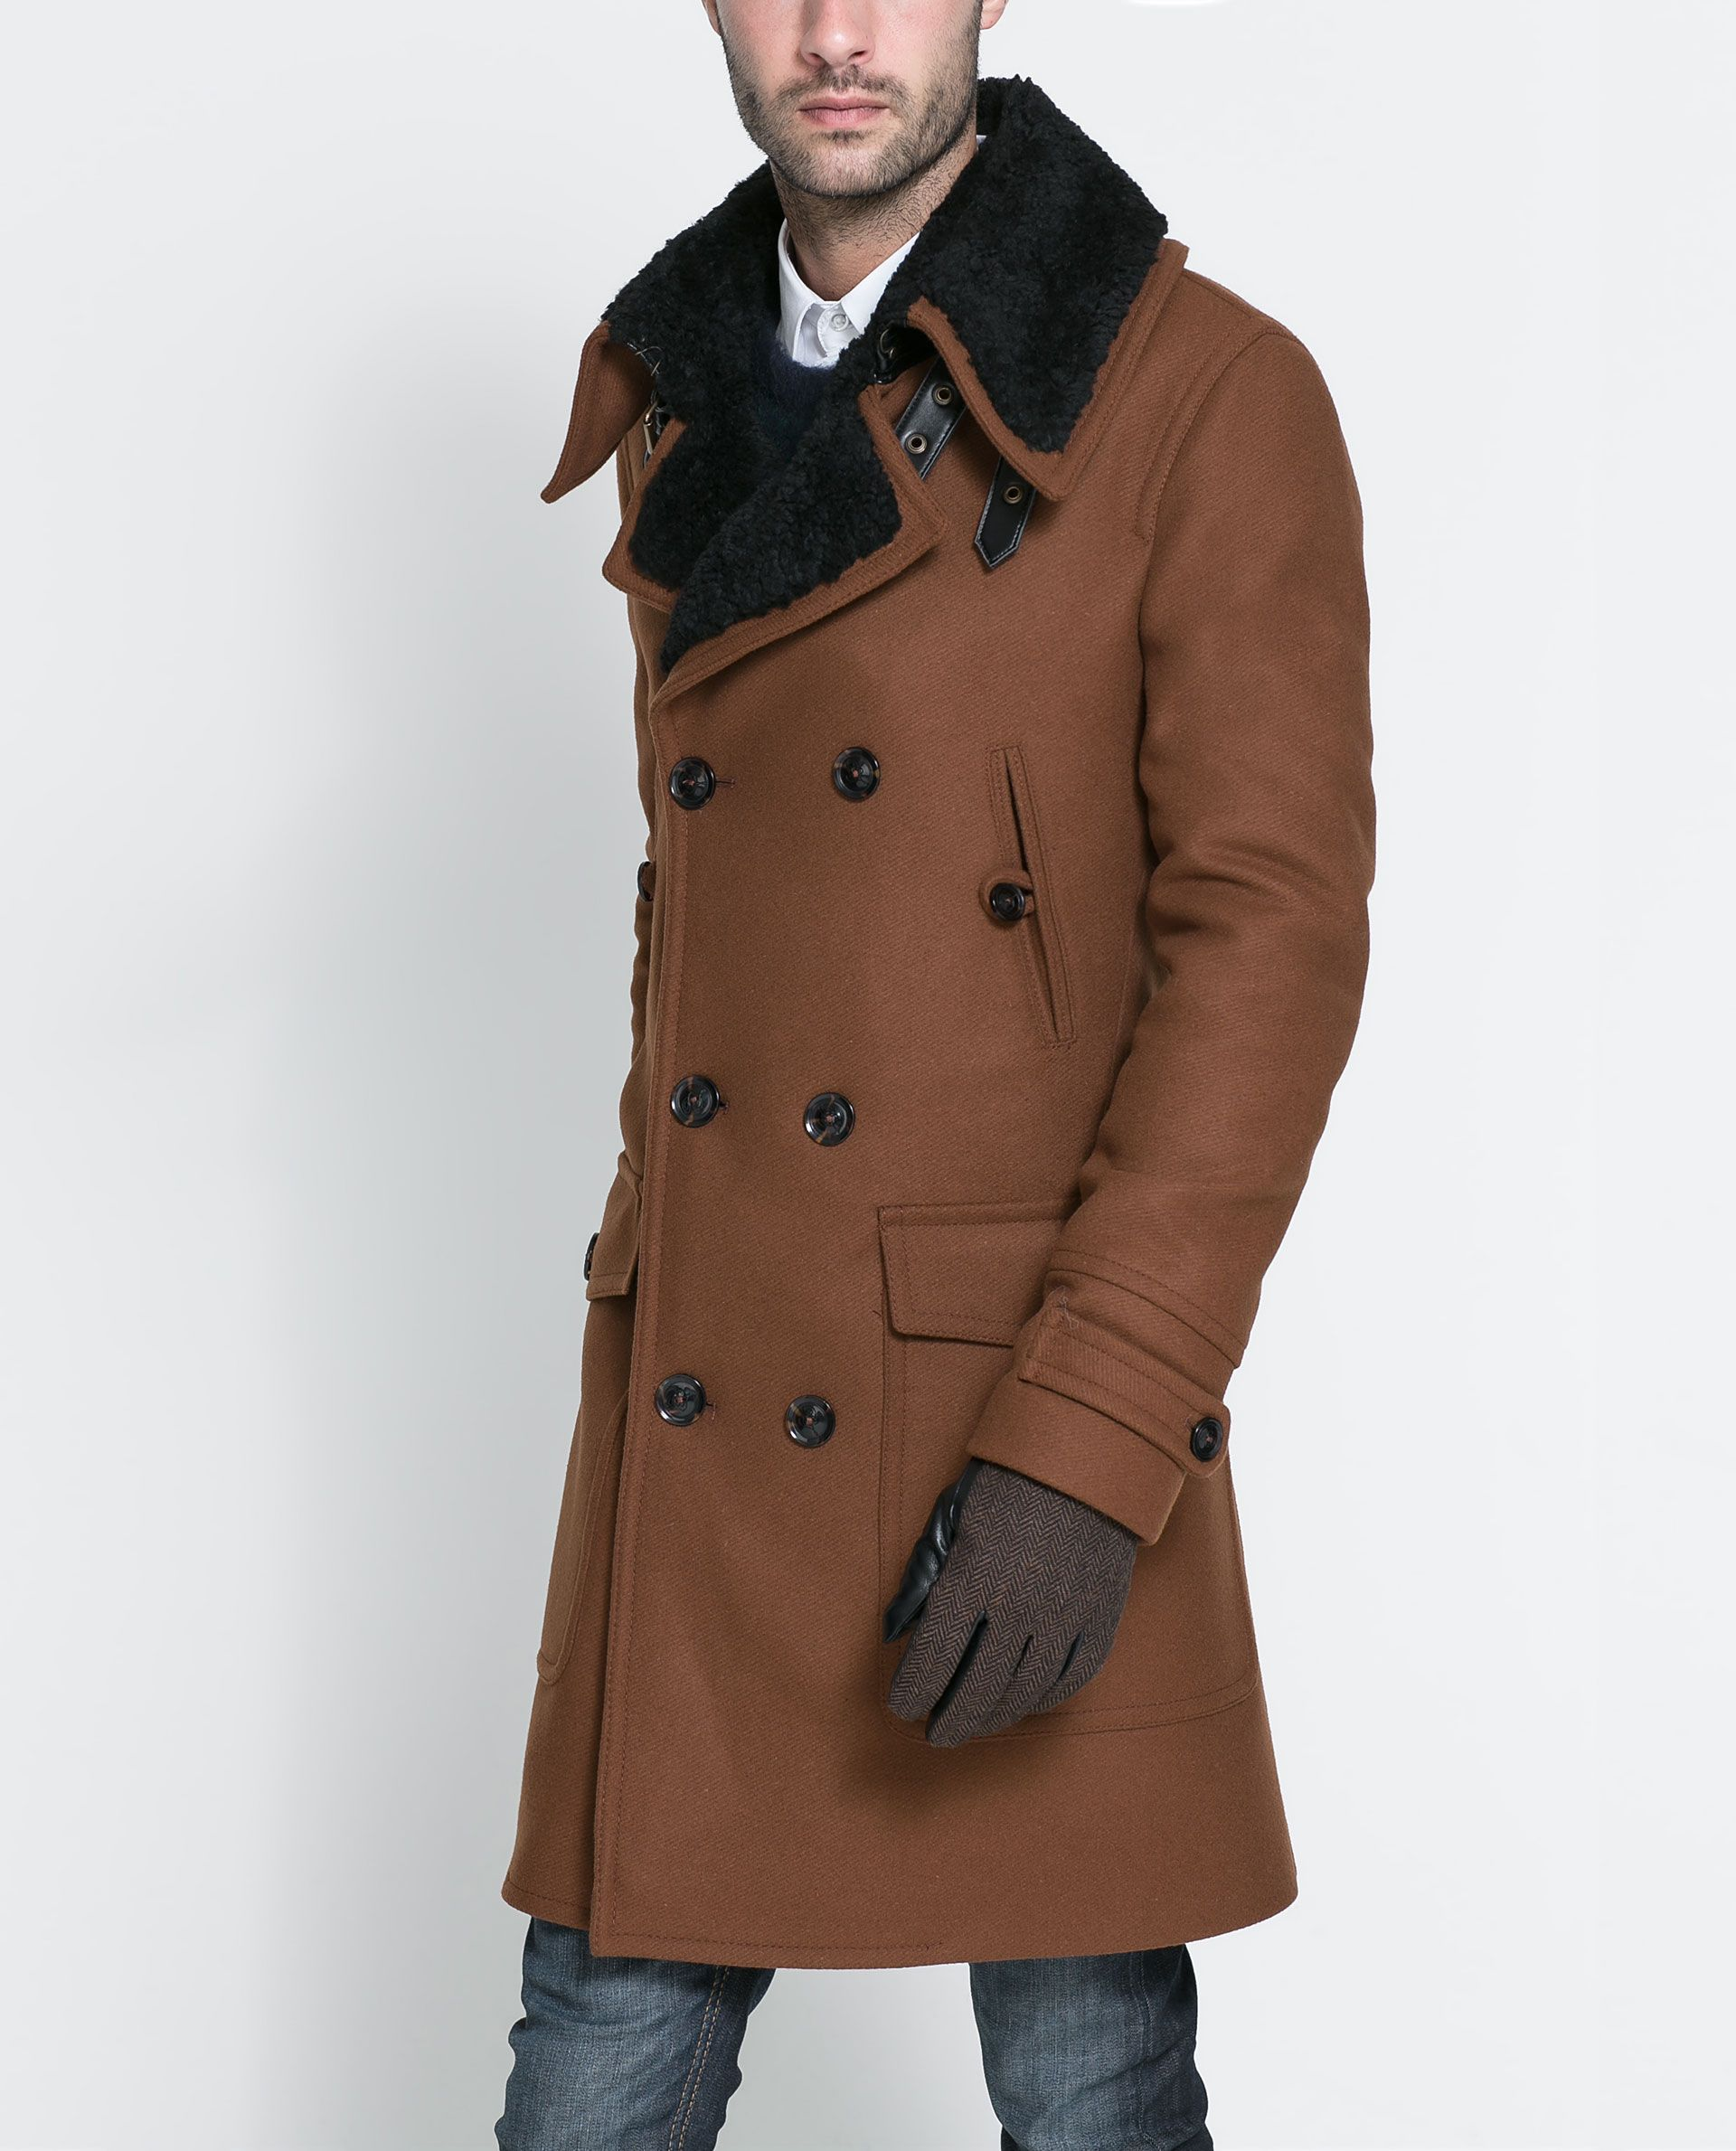 COAT WITH FUR COLLAR - Coats and Trench coats - Man | ZARA United ...